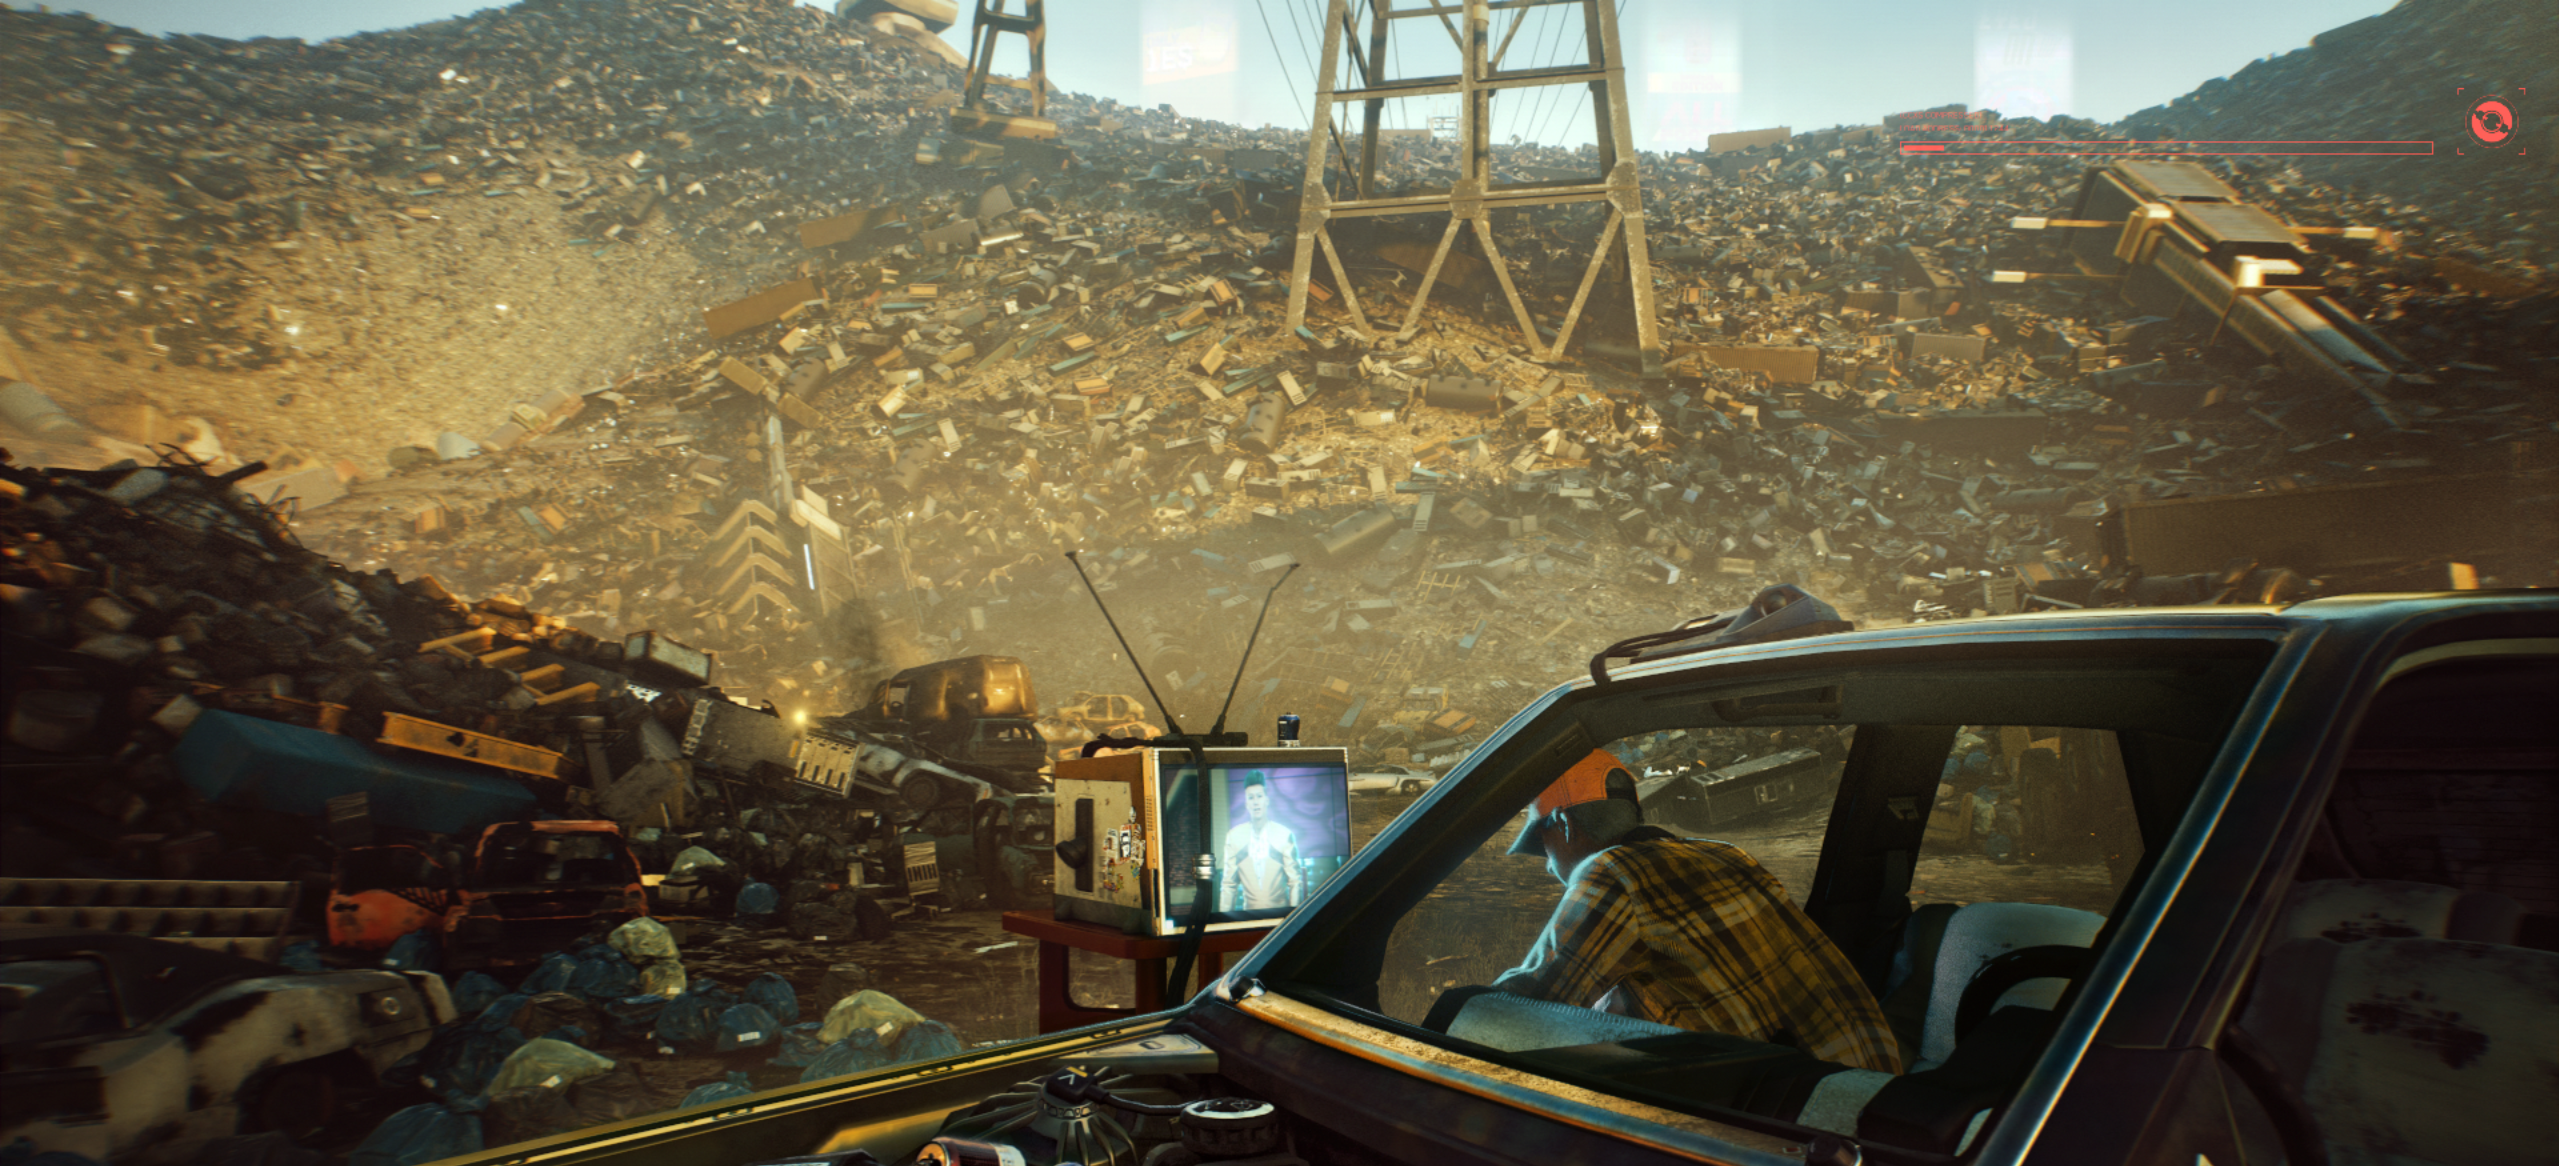 Screenshot of the game Cyberpunk 2077.A man in a yellow plaid shirt and orange cap faces away from the camera watching a TV in a scrap yard. The old frame of a car sits in the foreground.